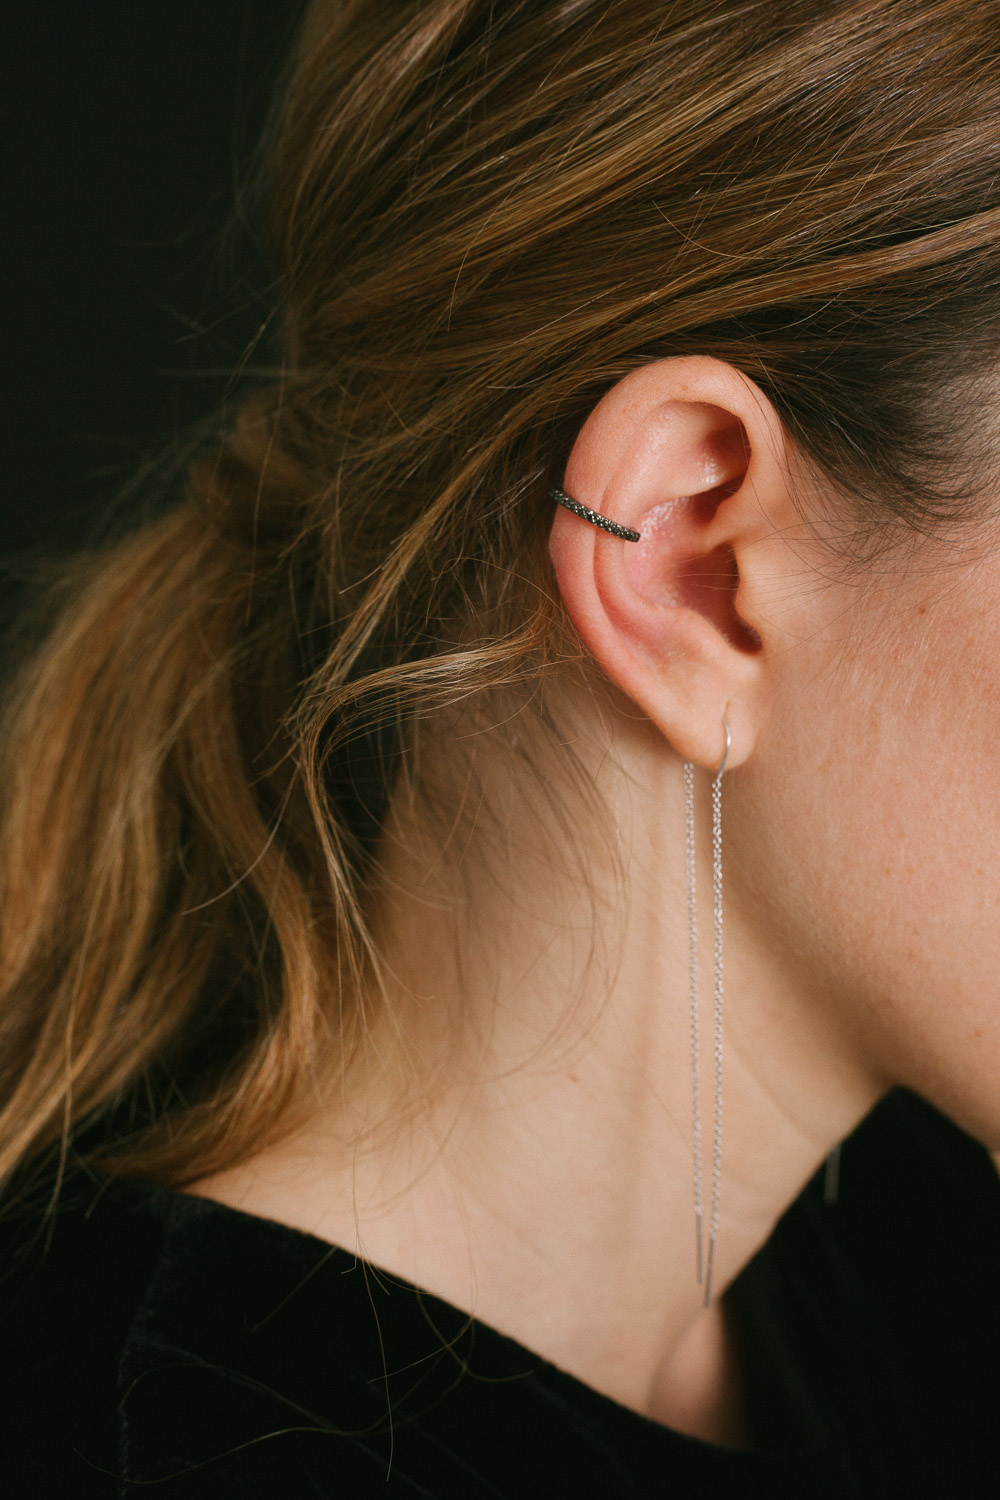 IPSILON EARCUFF IN BLACK RHODIUM & BLACK DIAMONDS